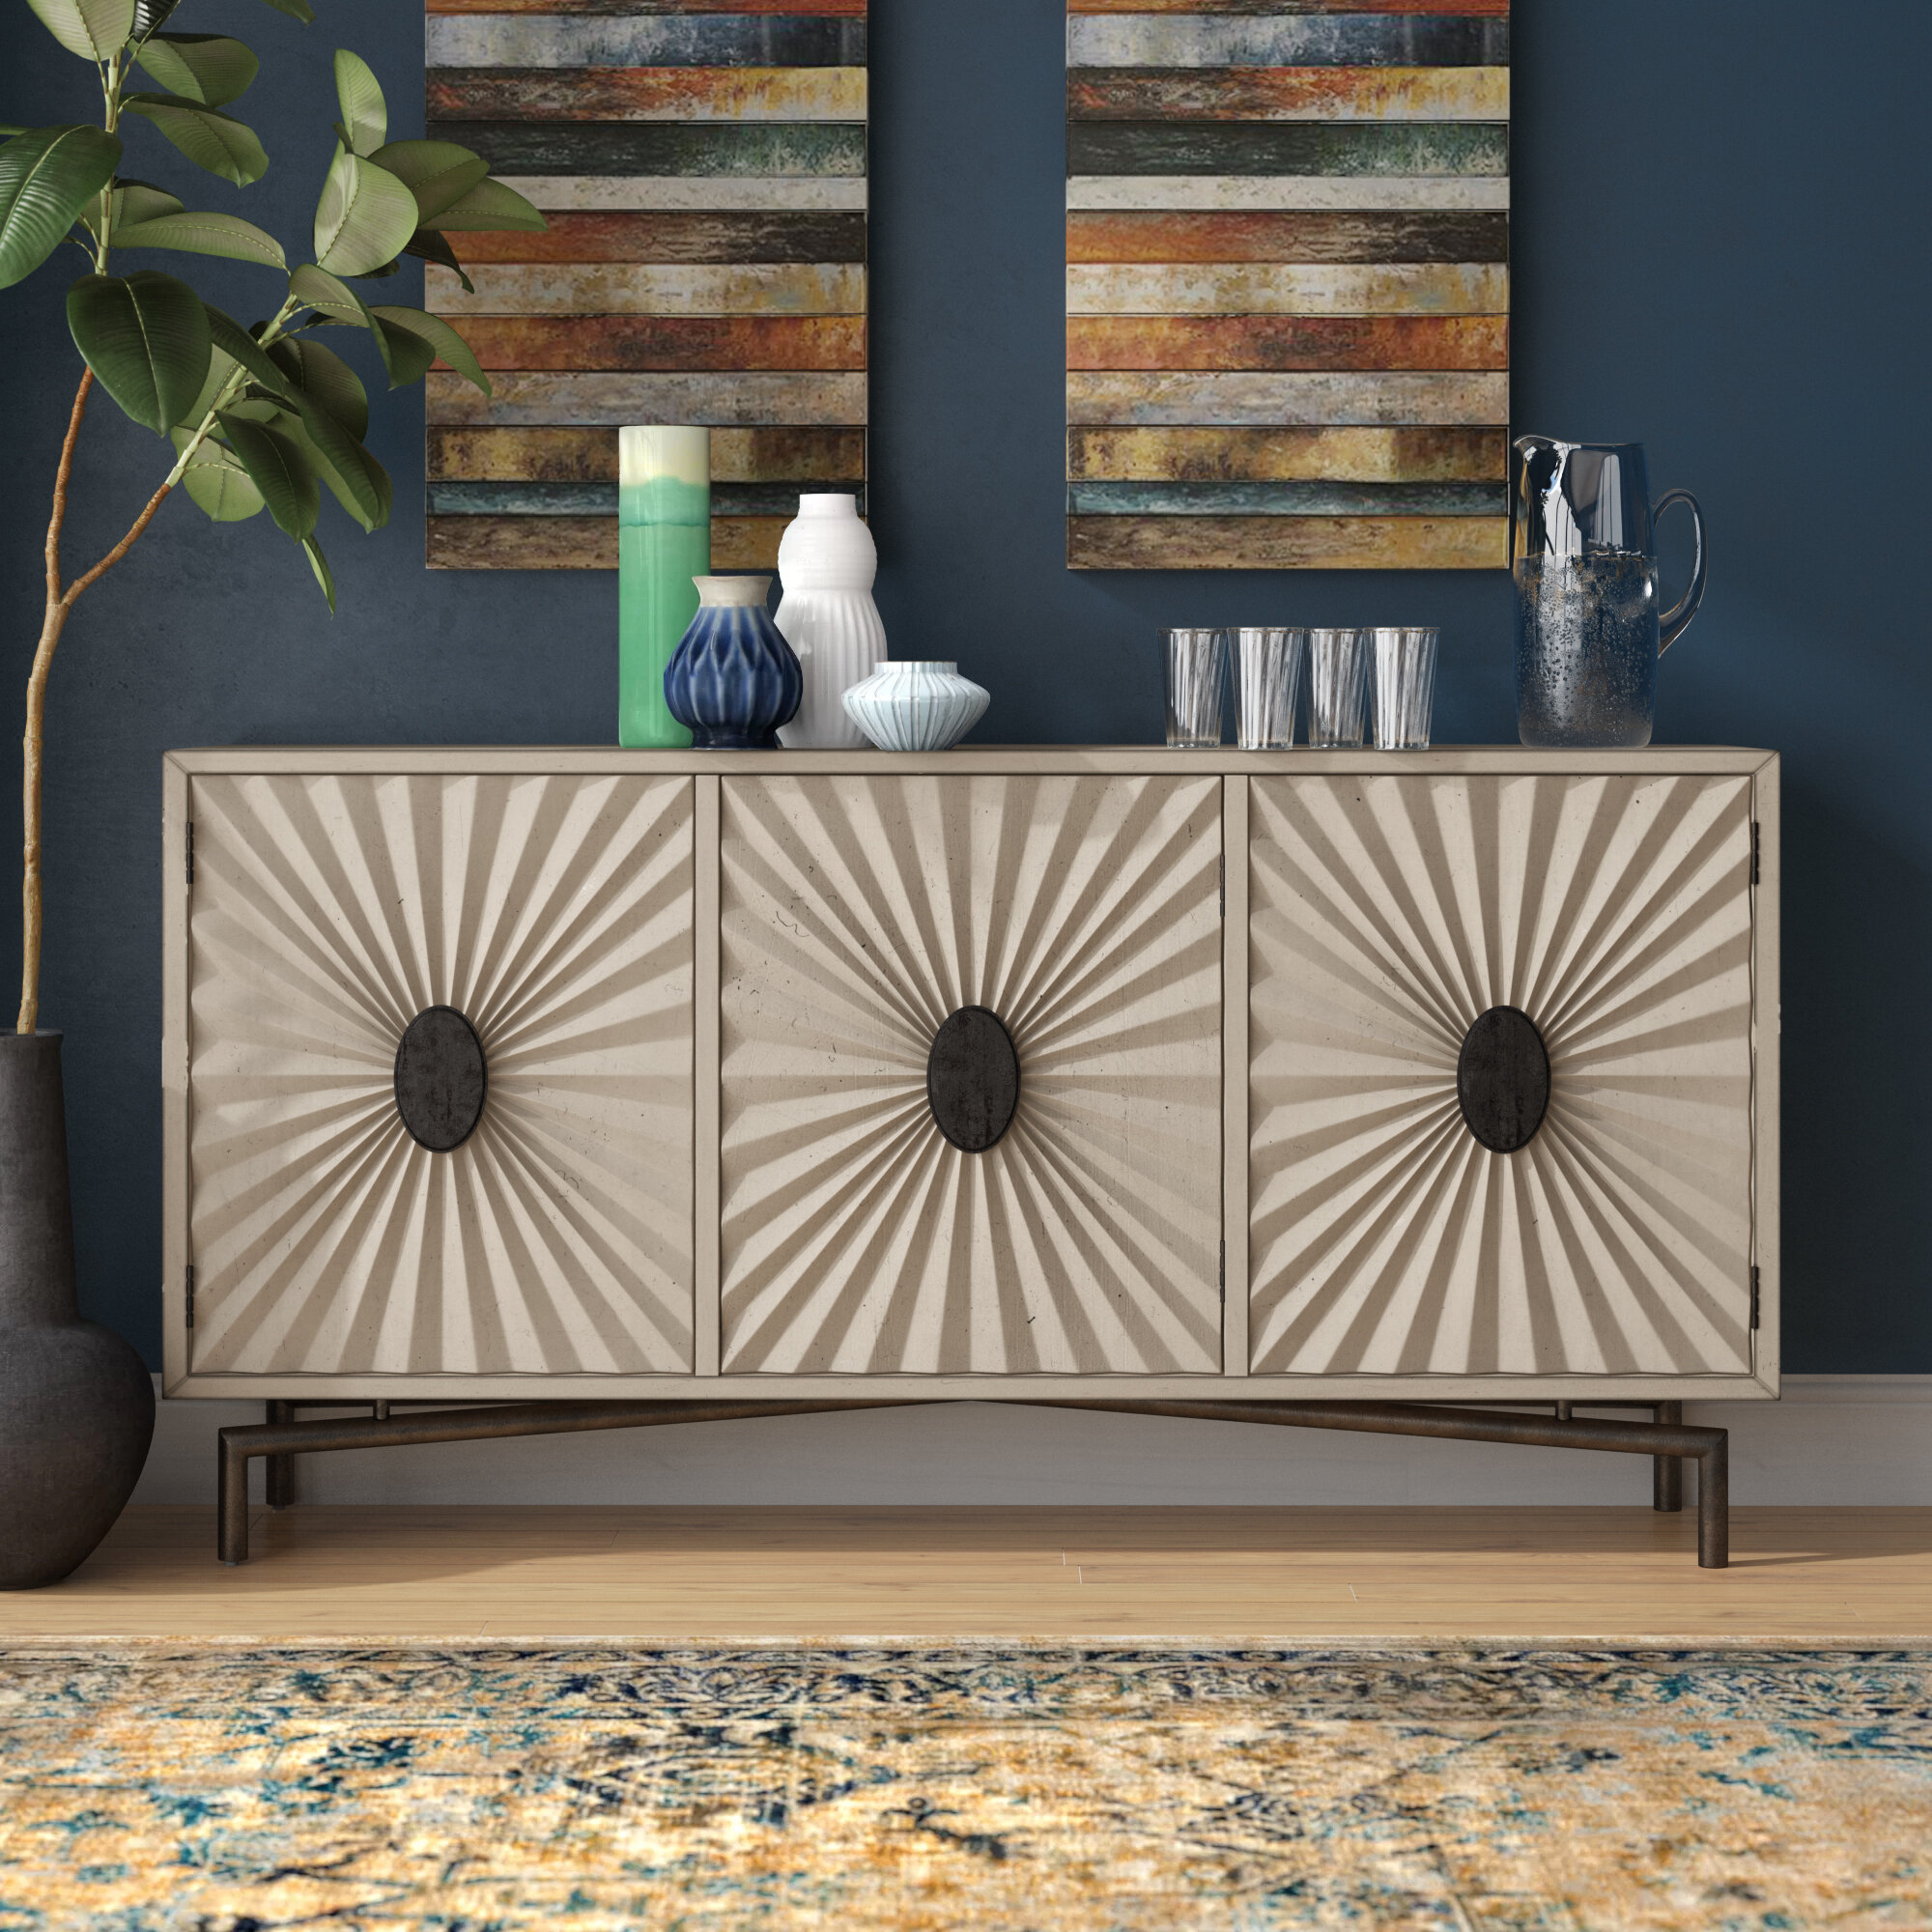 Errol Media Credenza Within Best And Newest Errol Media Credenzas (#11 of 20)